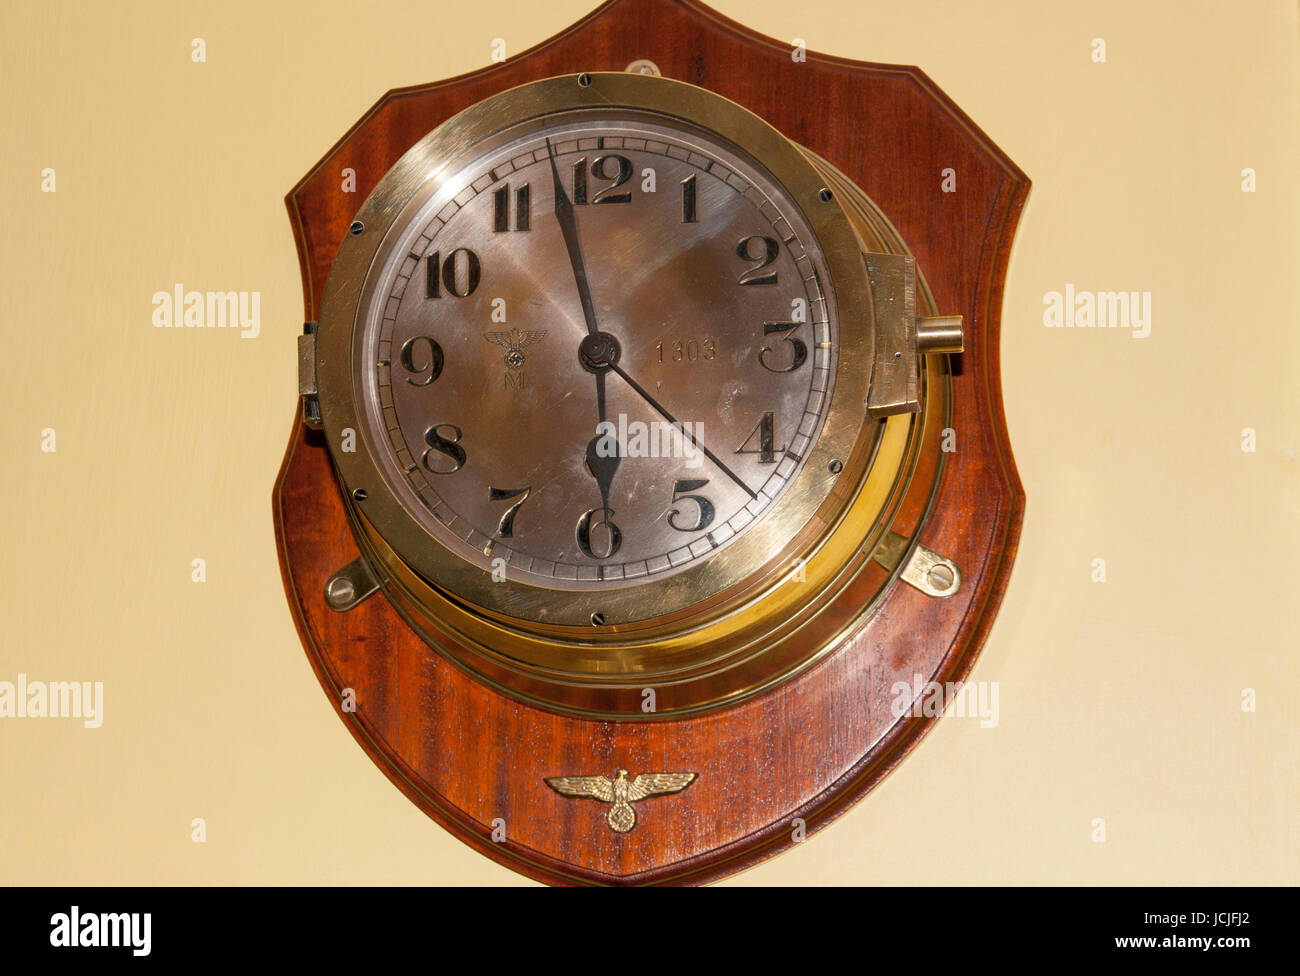 A working genuine U-Boat clock from U1303 mounted on a wooden base and displayed on wall - Stock Image